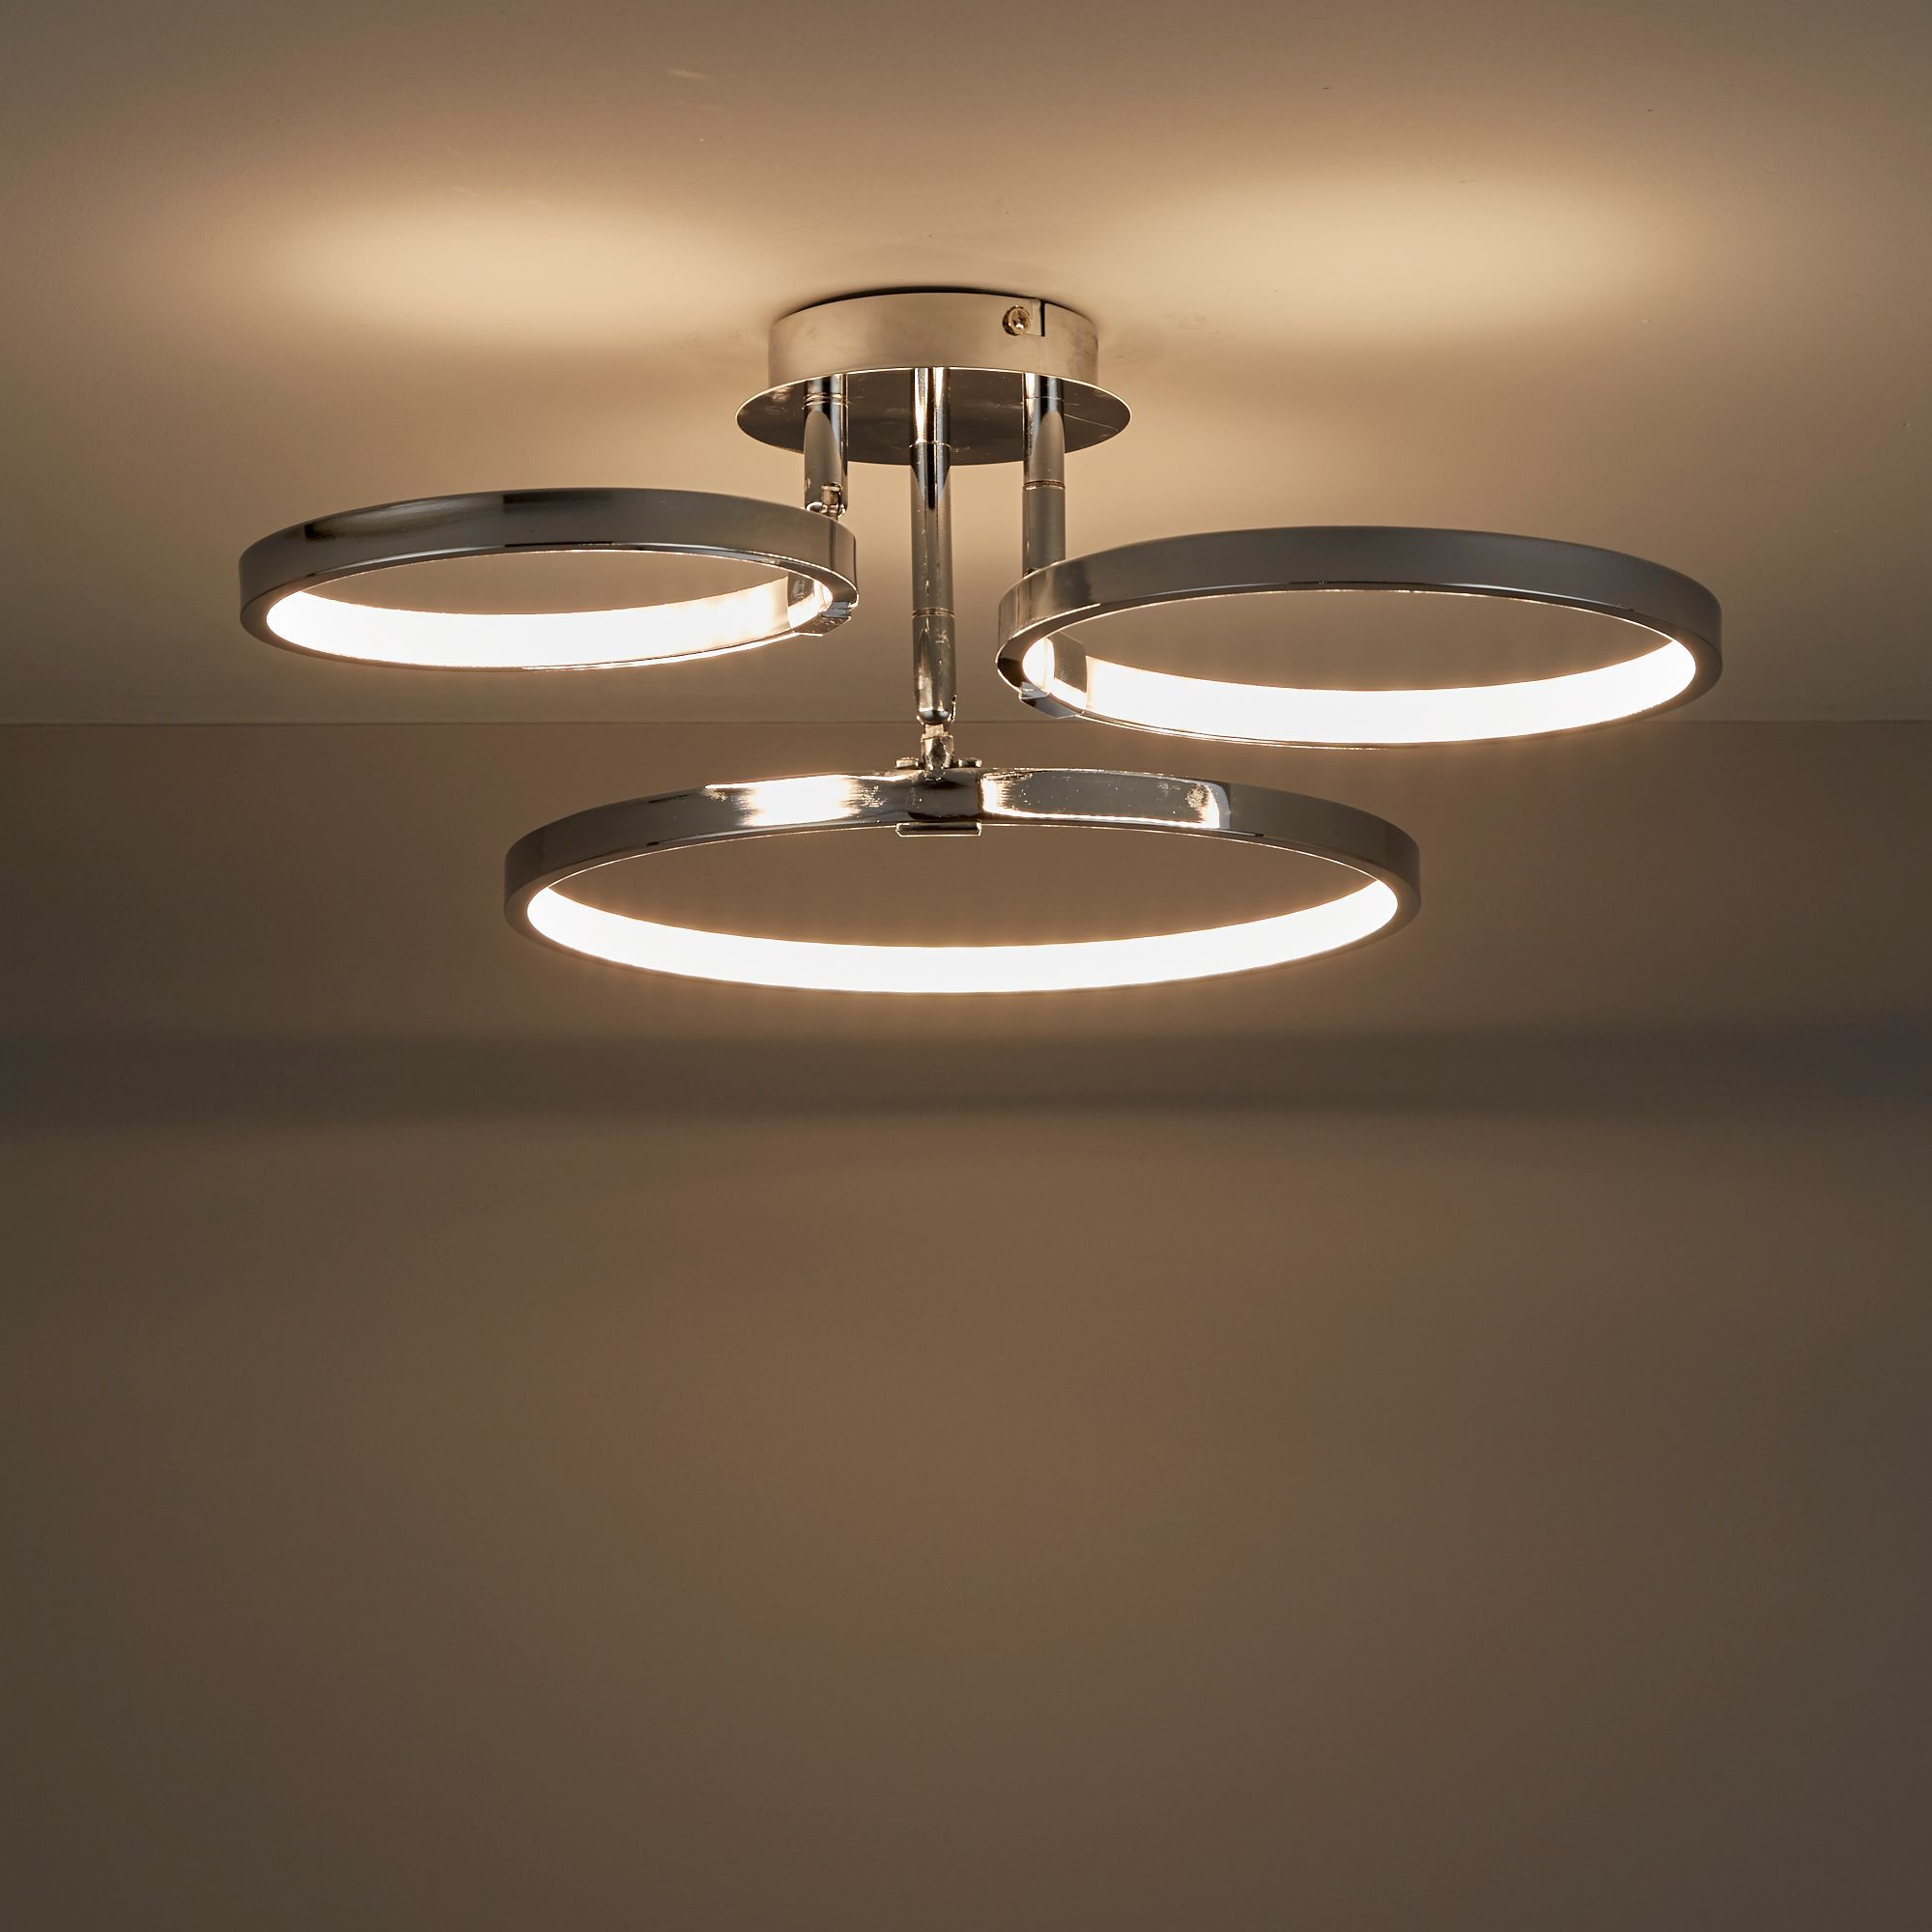 3 Bulb Ceiling Light: Annellus Chrome Effect 3 Lamp Ceiling Light